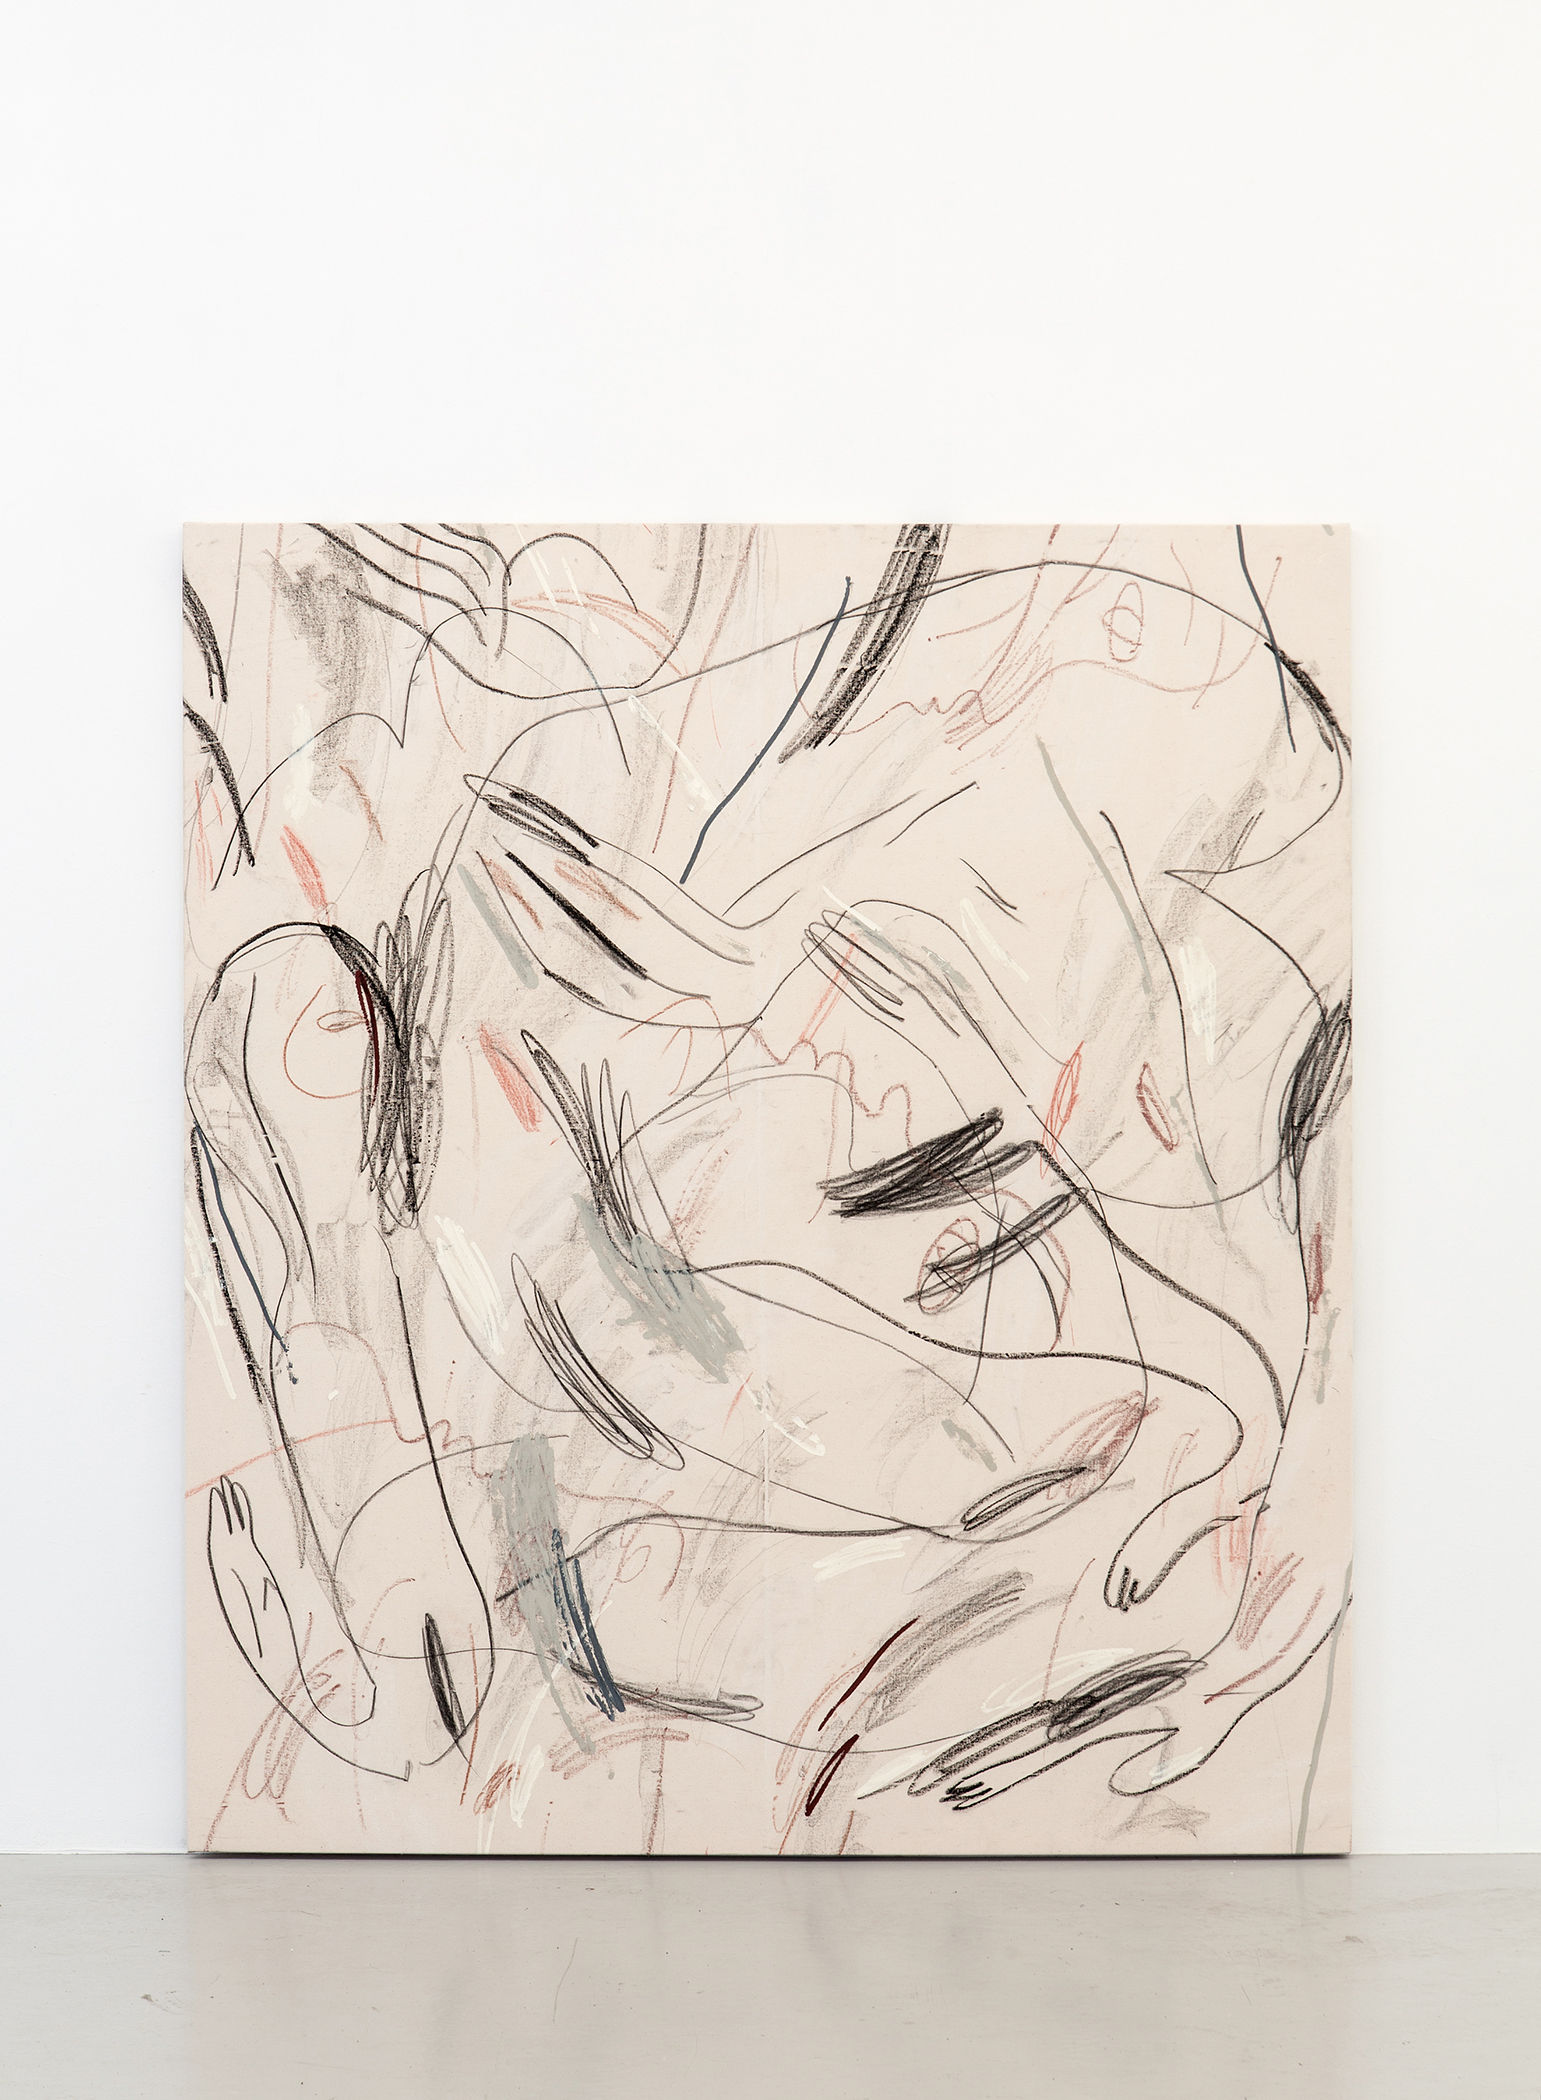 Alina Vergnano,  The Dance The Fall , 2019, Acrylic, oil stick and pastels on linen, 137 x 157 cm